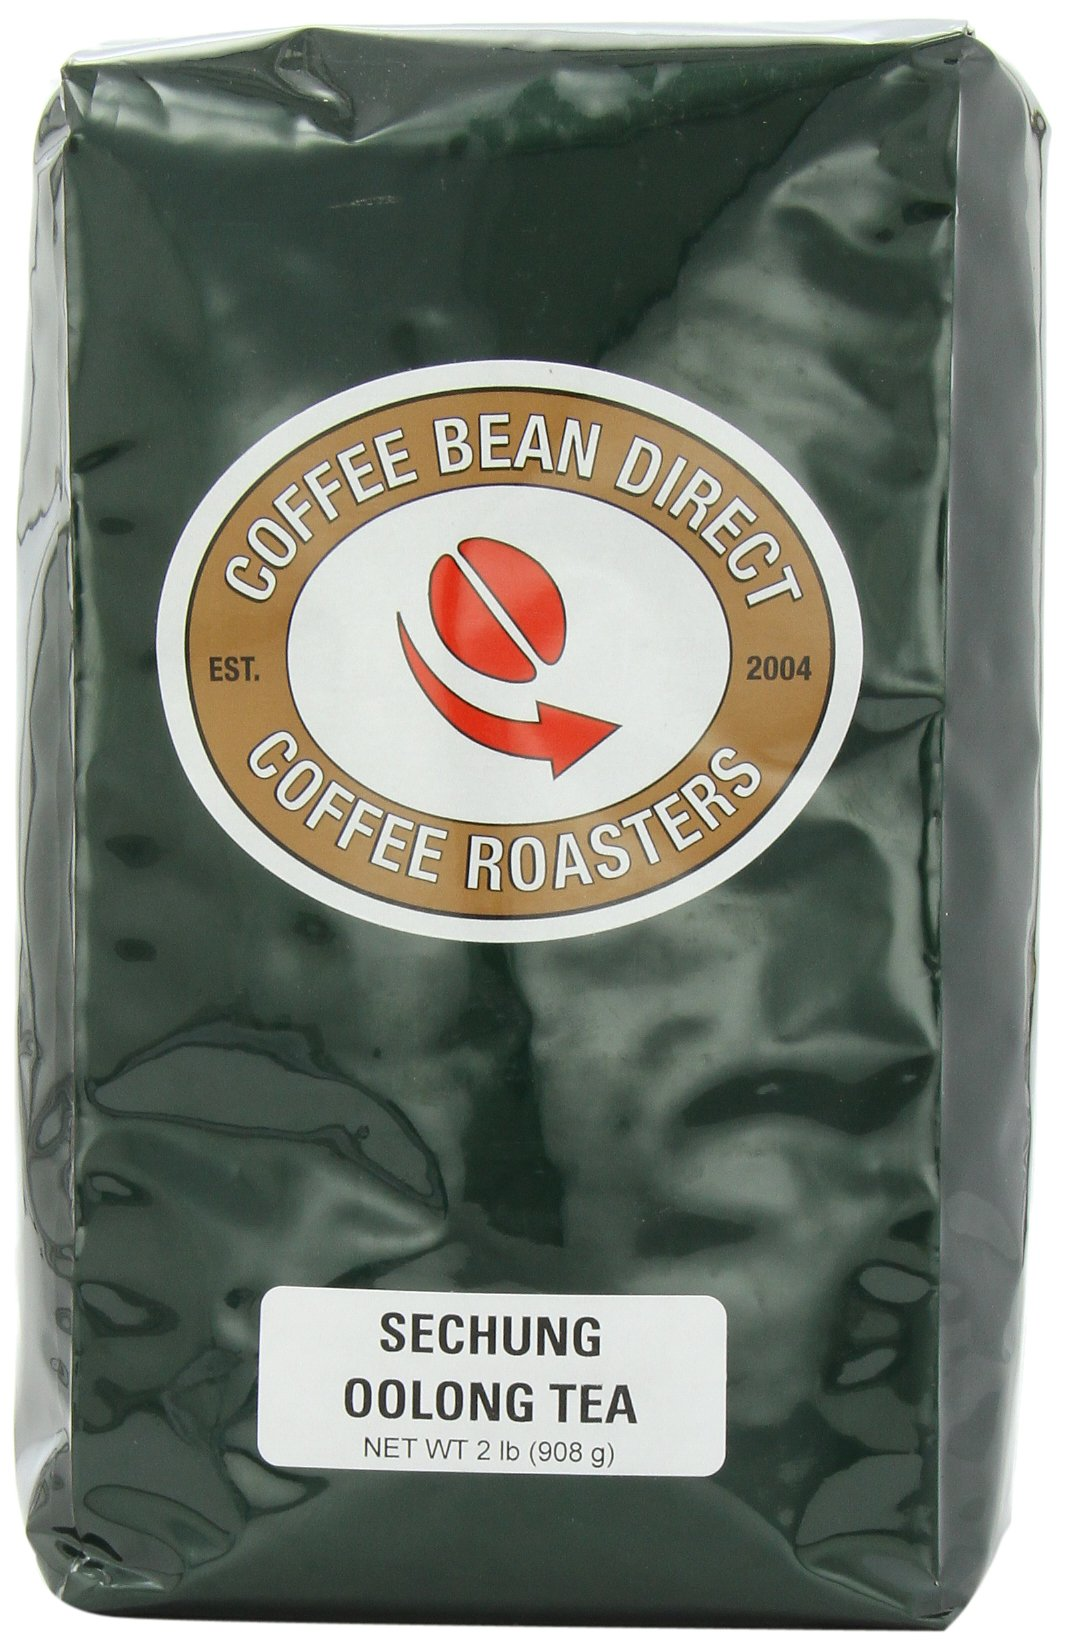 Coffee Bean Direct Sechung Oolong Loose Leaf Tea, 2 Pound Bag